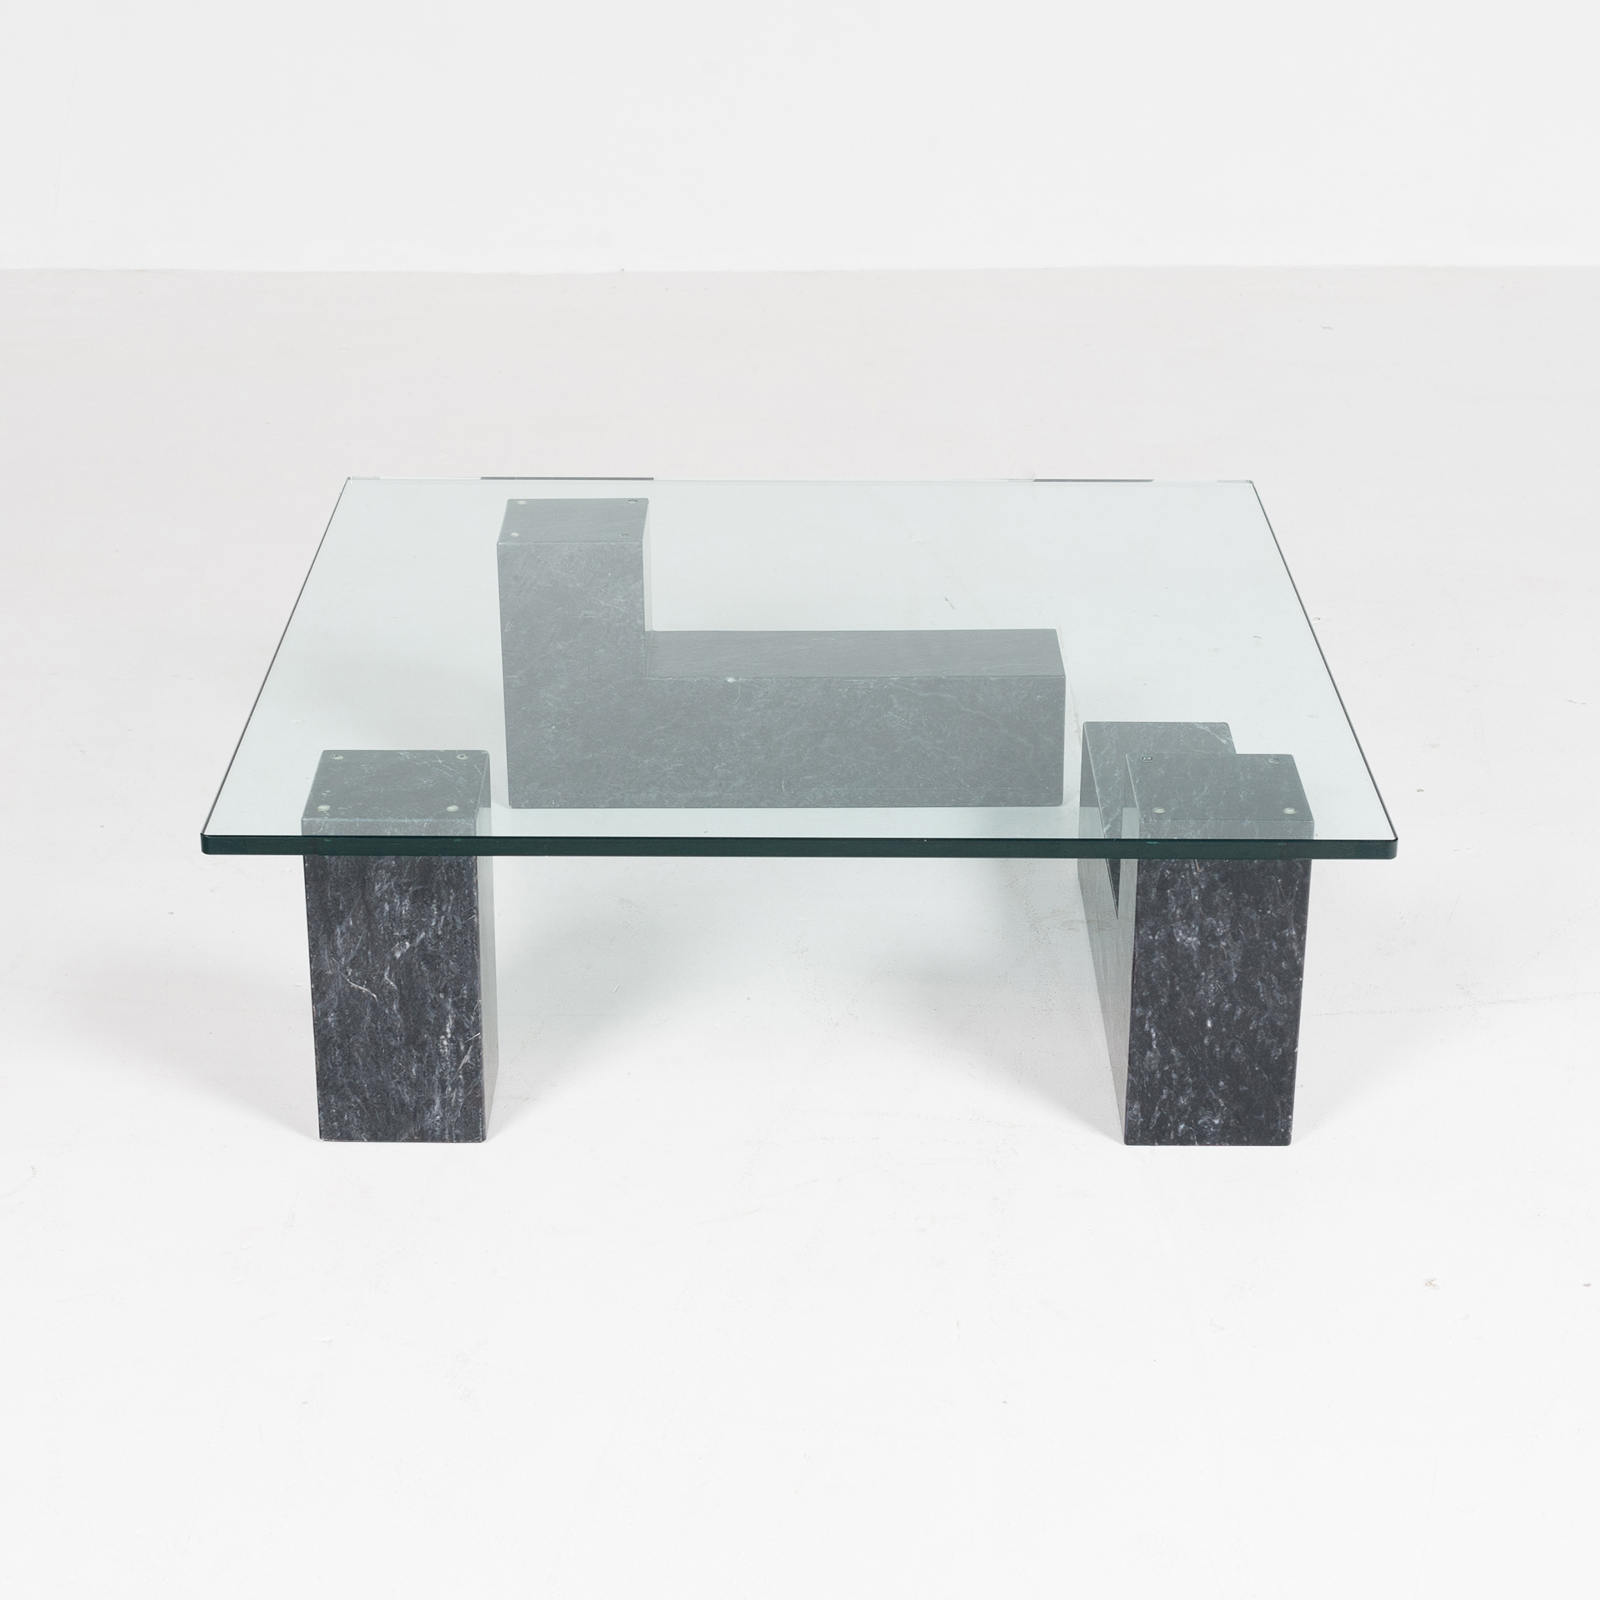 Hero Coffee Table In Black Carrara Marble, 3 Elements With Glass Top, Dutch 1980s